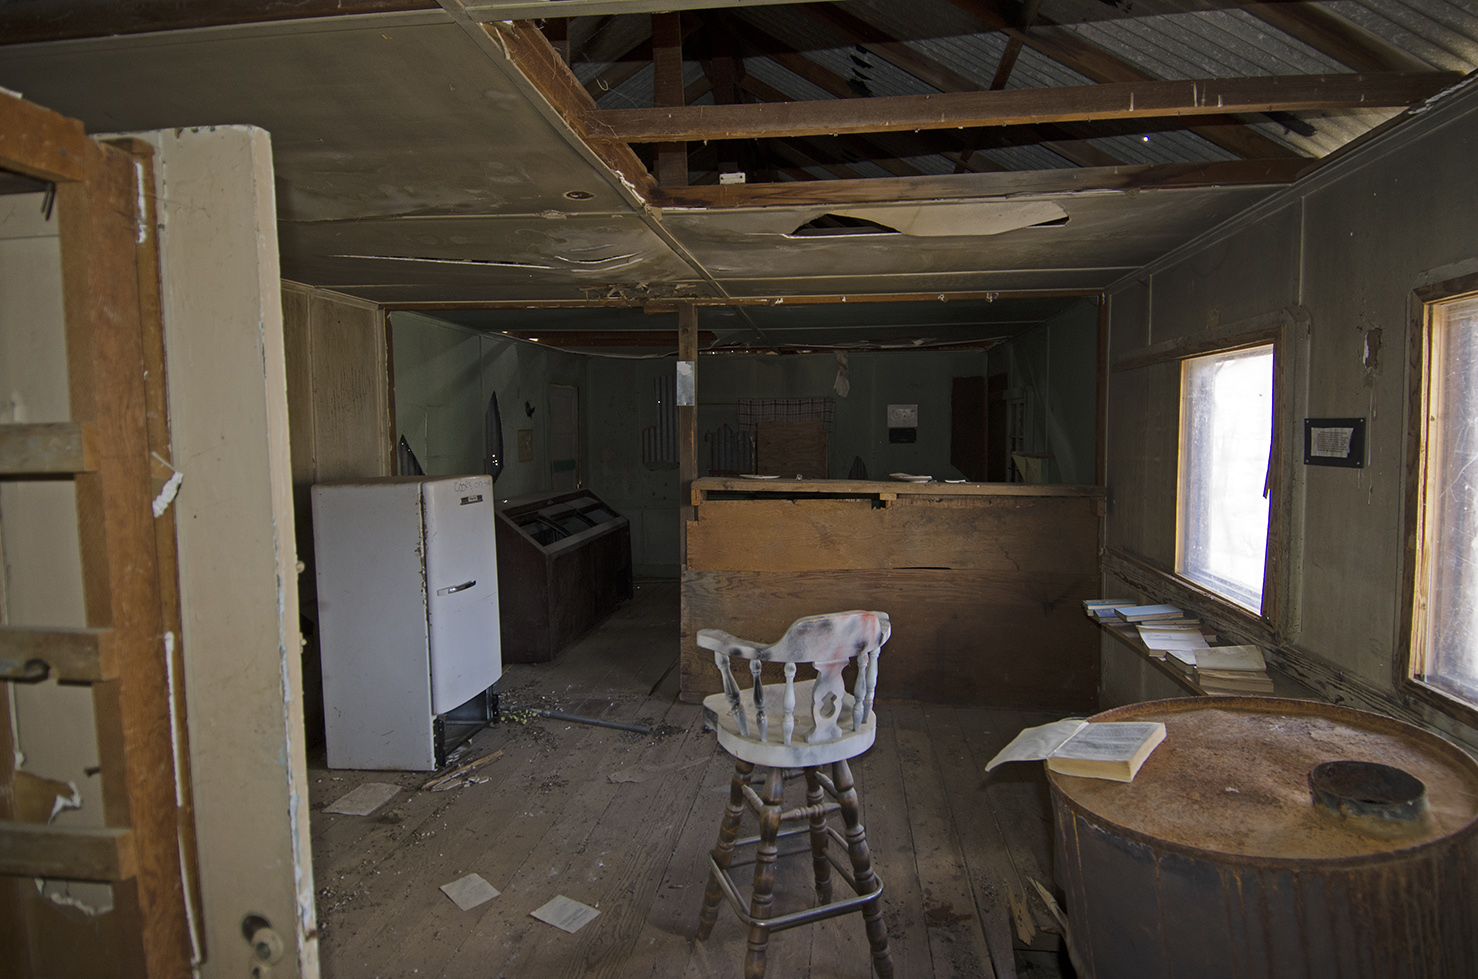 Inside the saloon. Note the old refridgerator and in the back what looks like an ice cream case. Another oil drum heater.